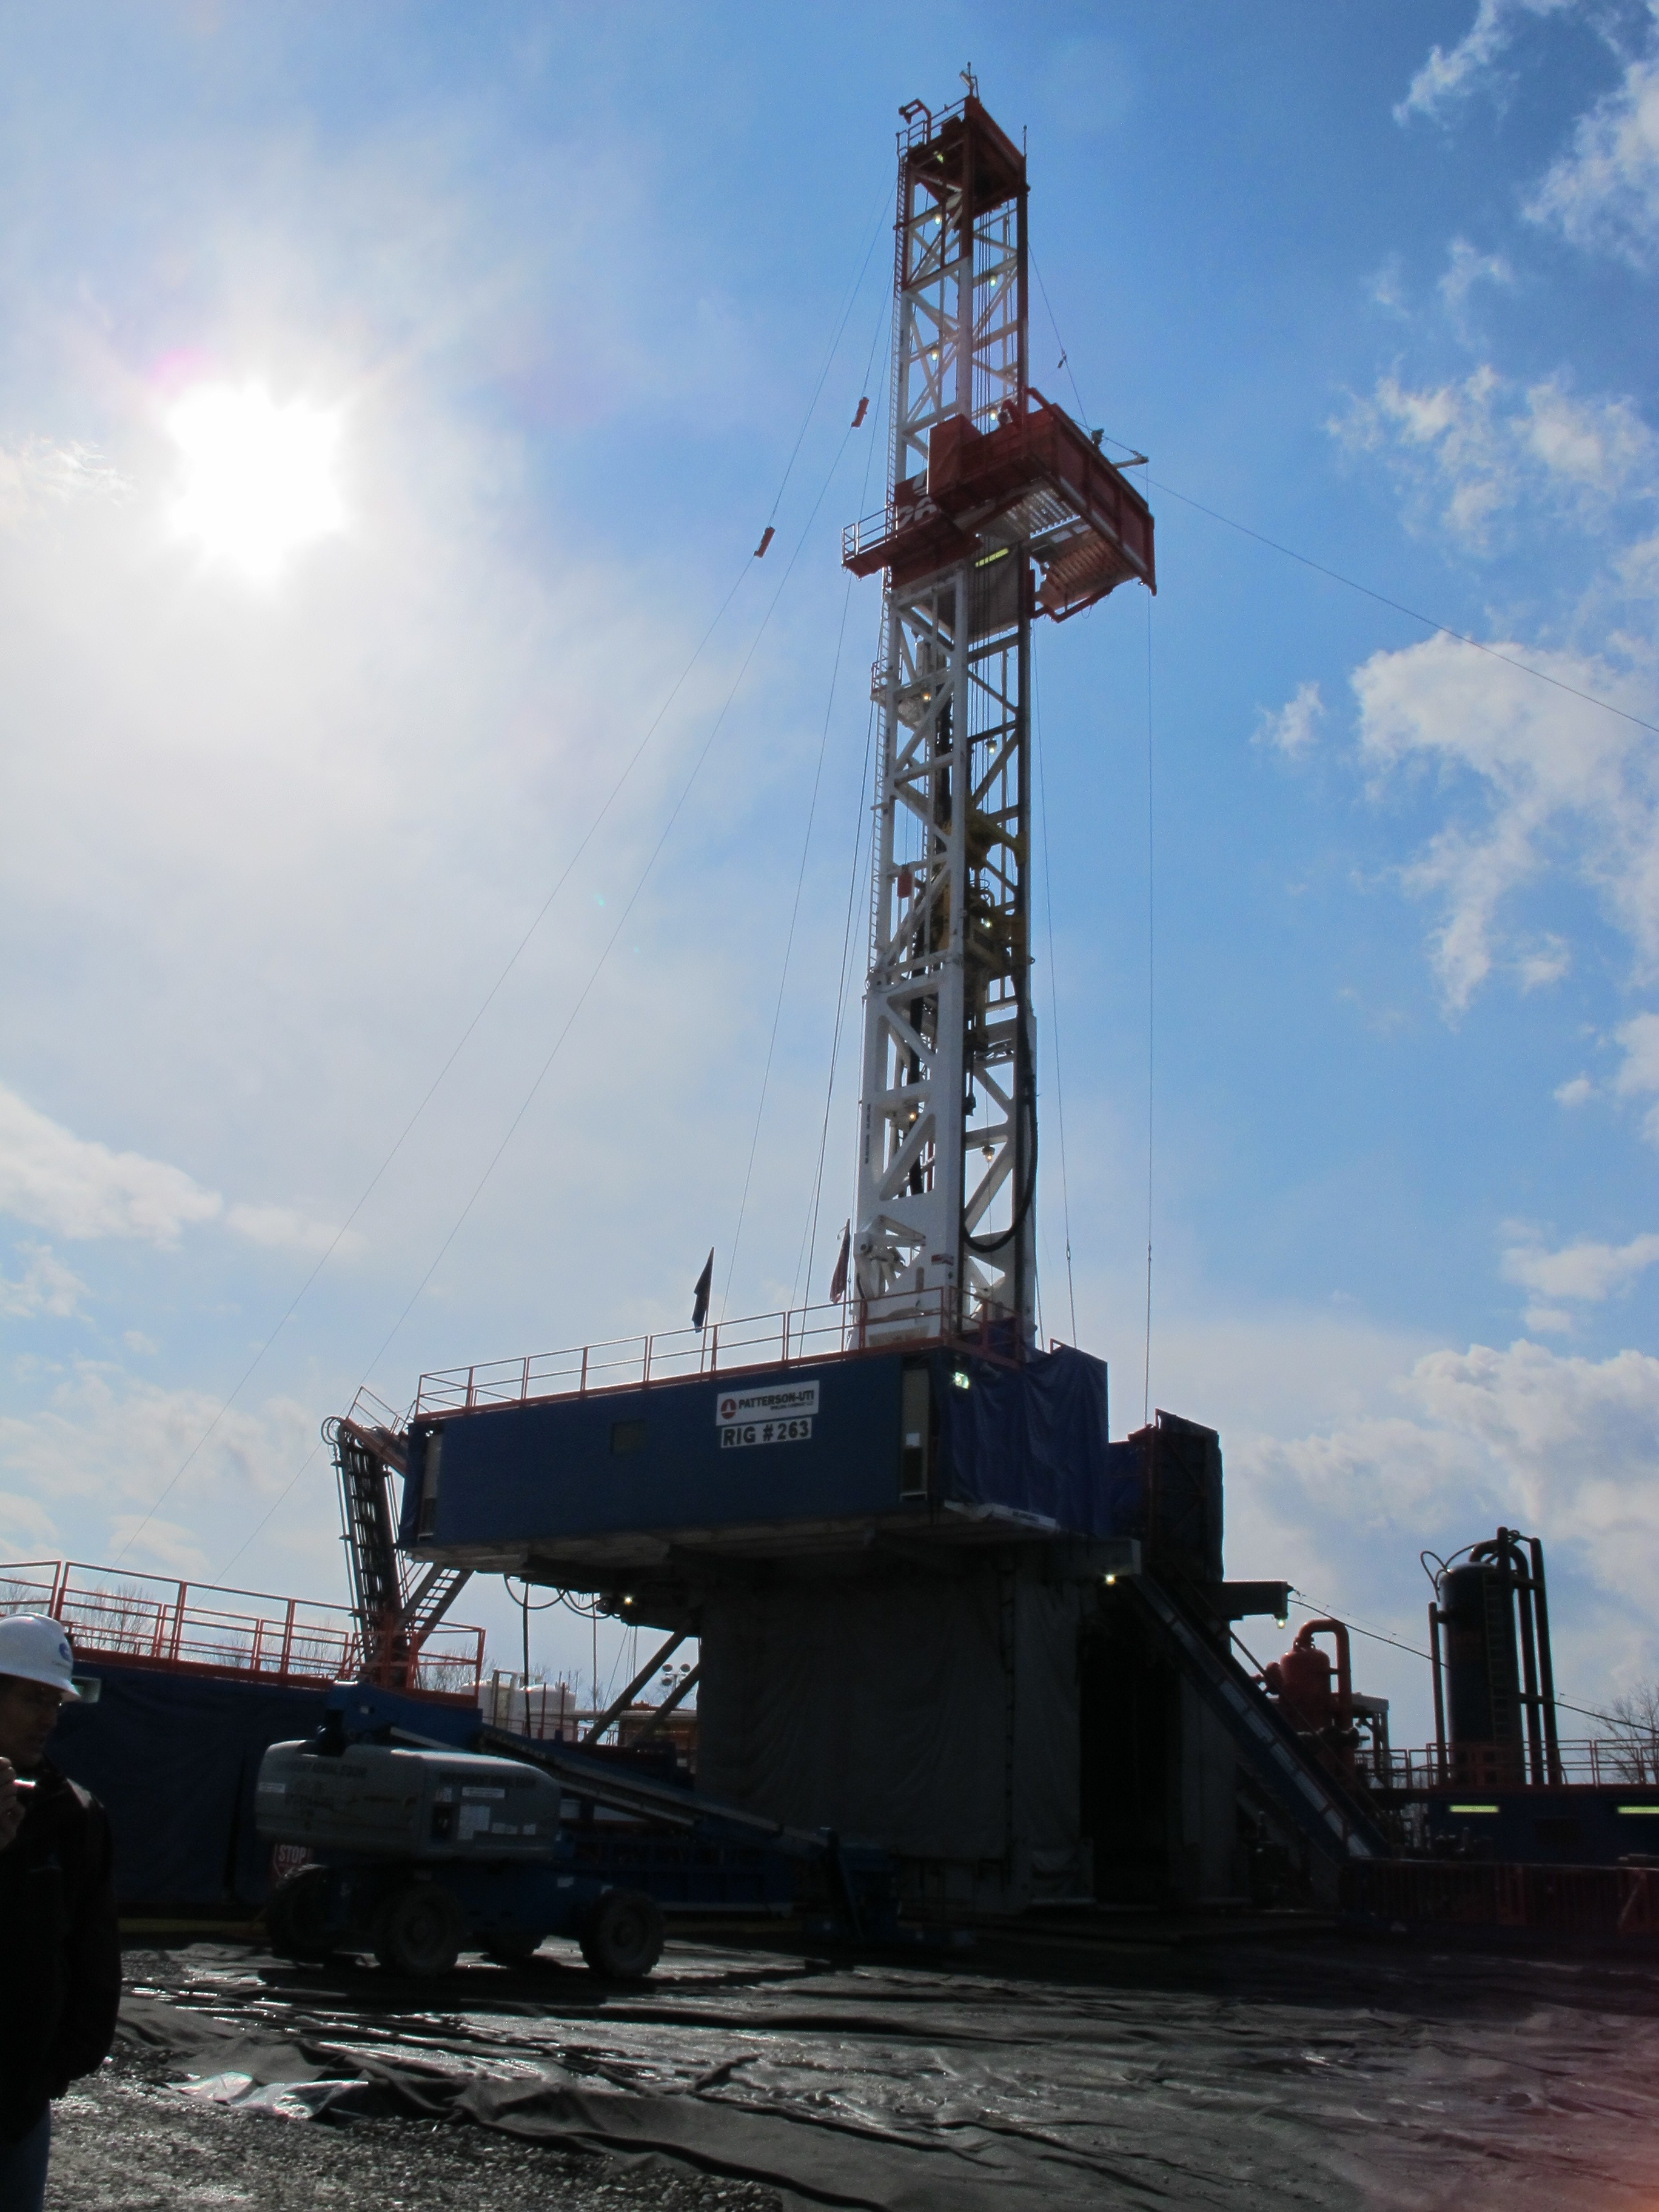 oil and natural gas drilling essay The use of hydraulic fracturing to extract oil and gas from the earth dates back to  the 1940s, but only in the past few years has fracking become an energy.